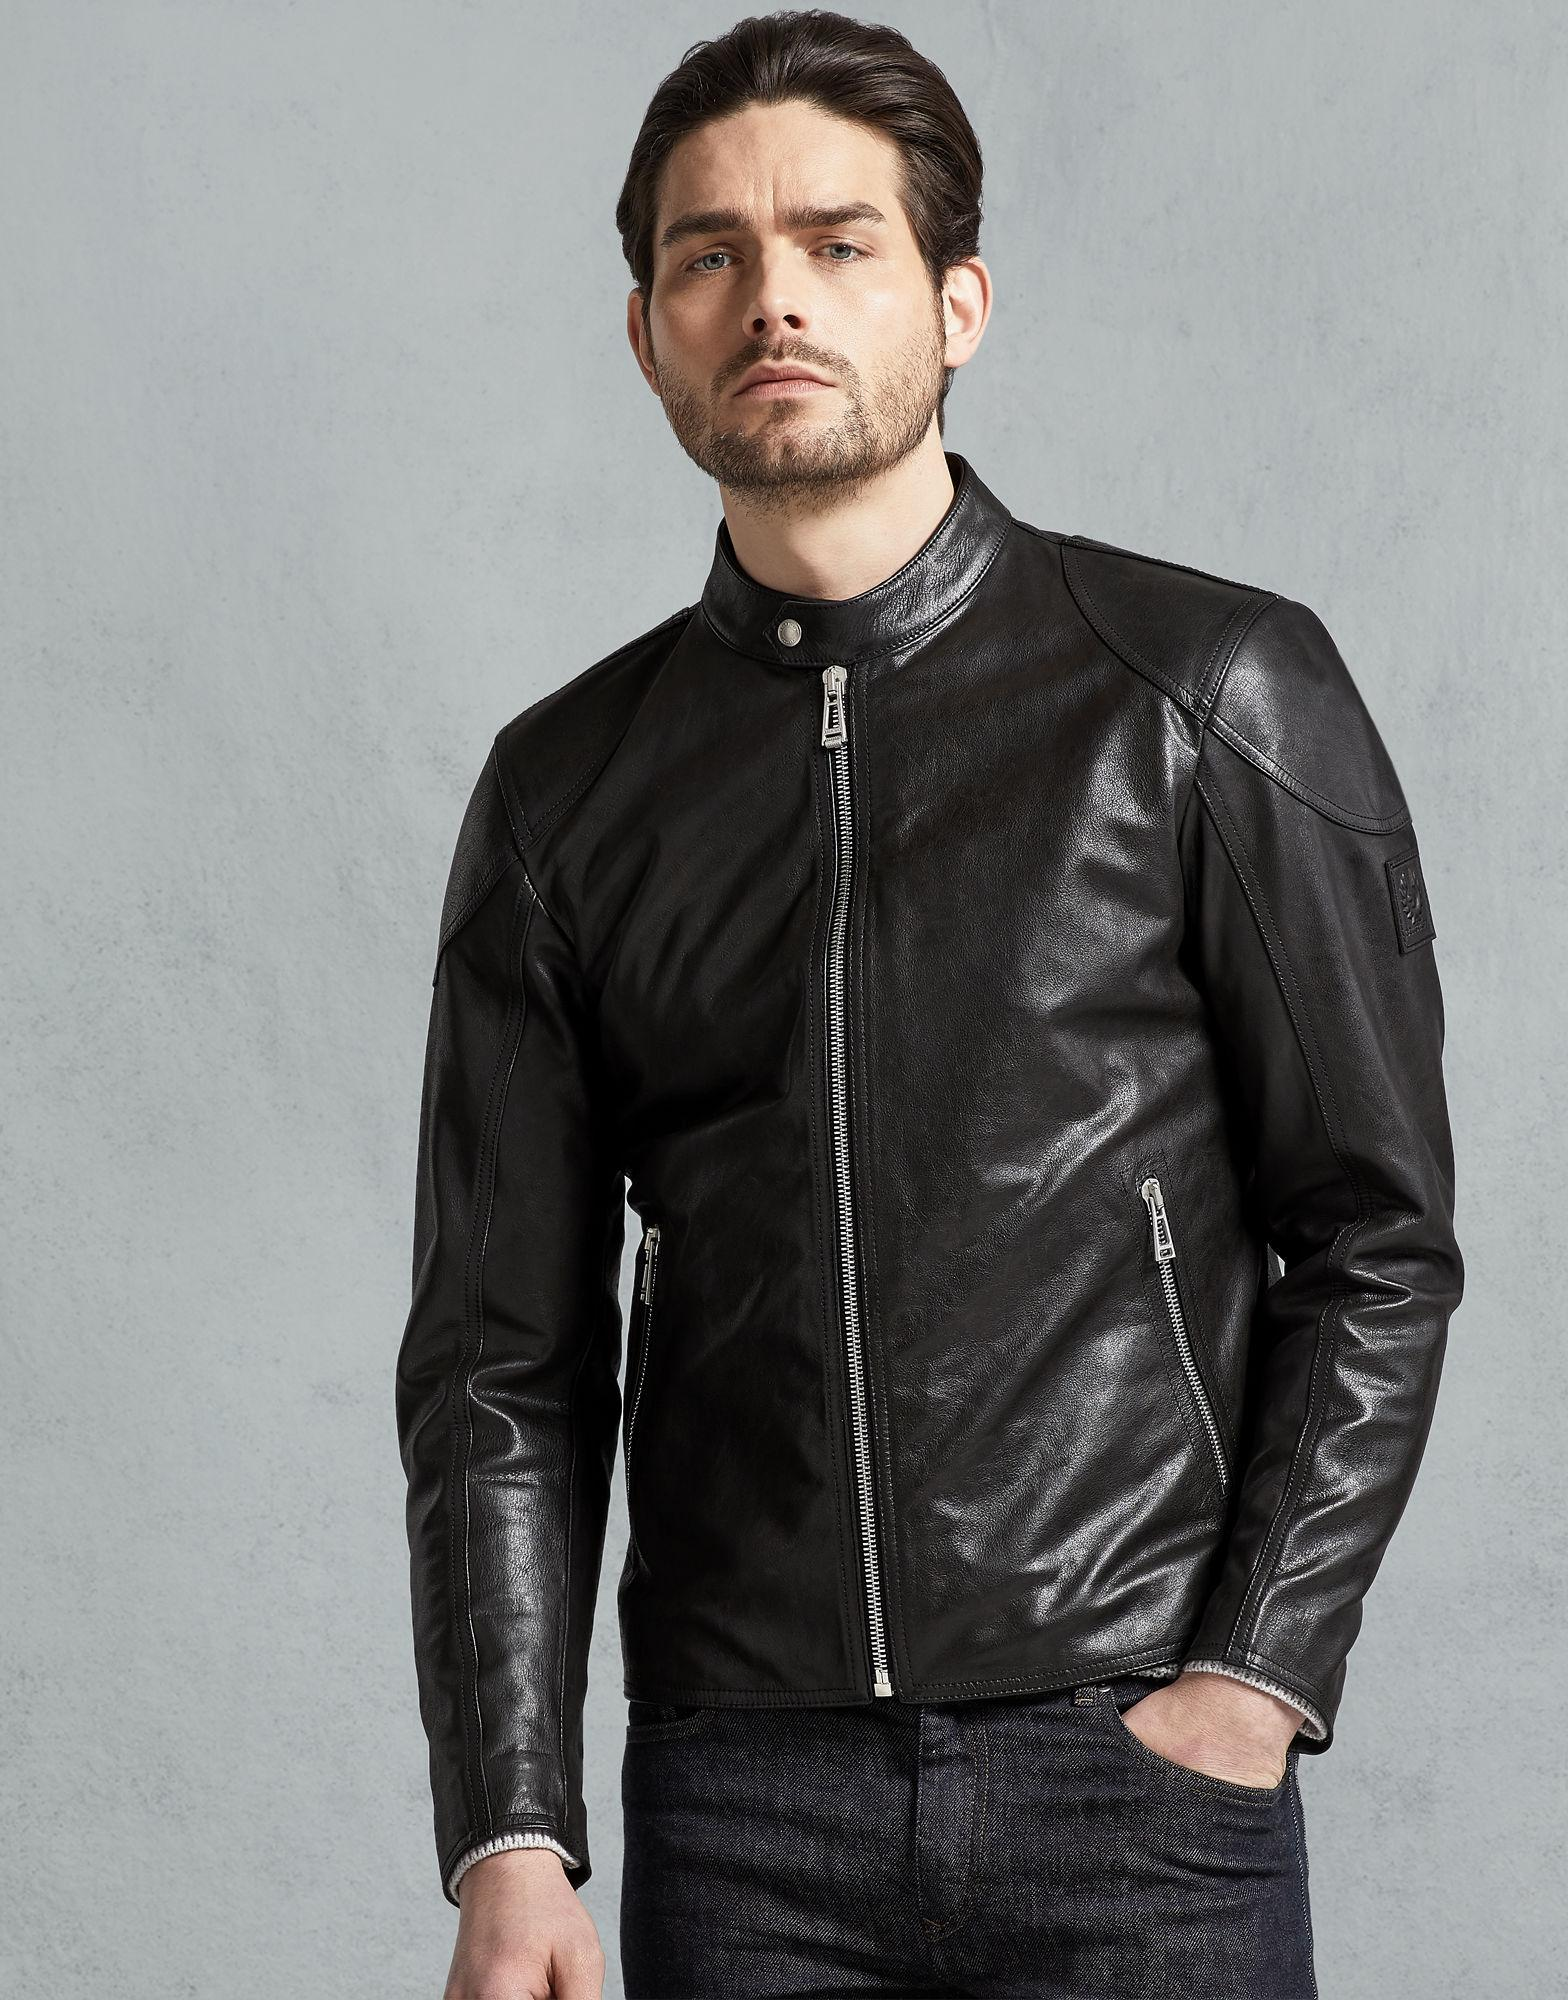 f64f2169529 Belstaff - Black Bandit Café Racer Jacket for Men - Lyst. View fullscreen